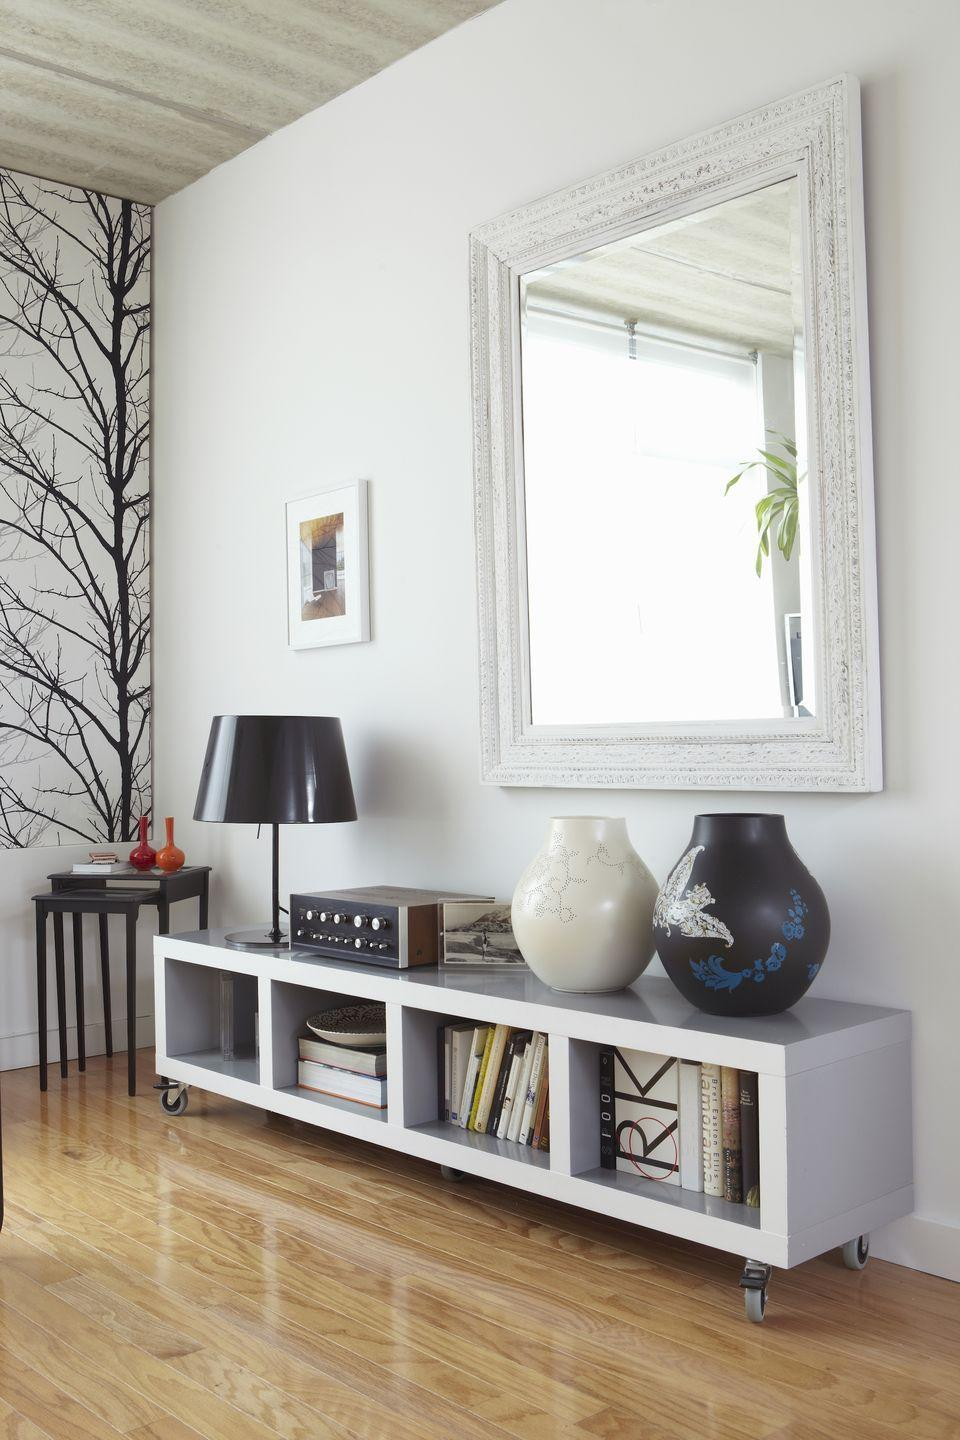 """<p>Double the amount of sunlight in your room by allowing it to bounce off reflective surfaces. Hang a large <a href=""""https://www.elledecor.com/design-decorate/room-ideas/g3037/bathroom-mirrors/"""" rel=""""nofollow noopener"""" target=""""_blank"""" data-ylk=""""slk:mirror"""" class=""""link rapid-noclick-resp"""">mirror</a> directly across from the largest window in your room, or arrange an array of smaller mirrors to help brighten a dark staircase, suggests <a href=""""http://www.houzz.com/ideabooks/8791544/list/so-you-bought-a-cave-7-ways-to-open-your-home-to-light"""" rel=""""nofollow noopener"""" target=""""_blank"""" data-ylk=""""slk:Houzz"""" class=""""link rapid-noclick-resp"""">Houzz</a>. </p>"""